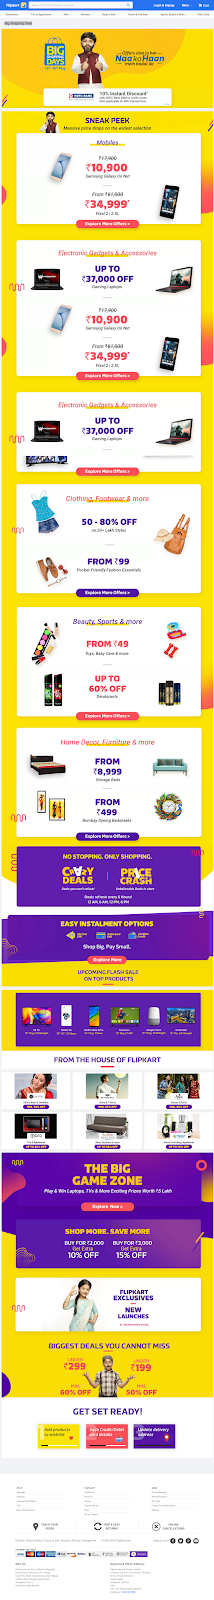 Big Shopping Days Offers on May 13th   16th  Get Great Offers during BSD 2018   Flipkart com